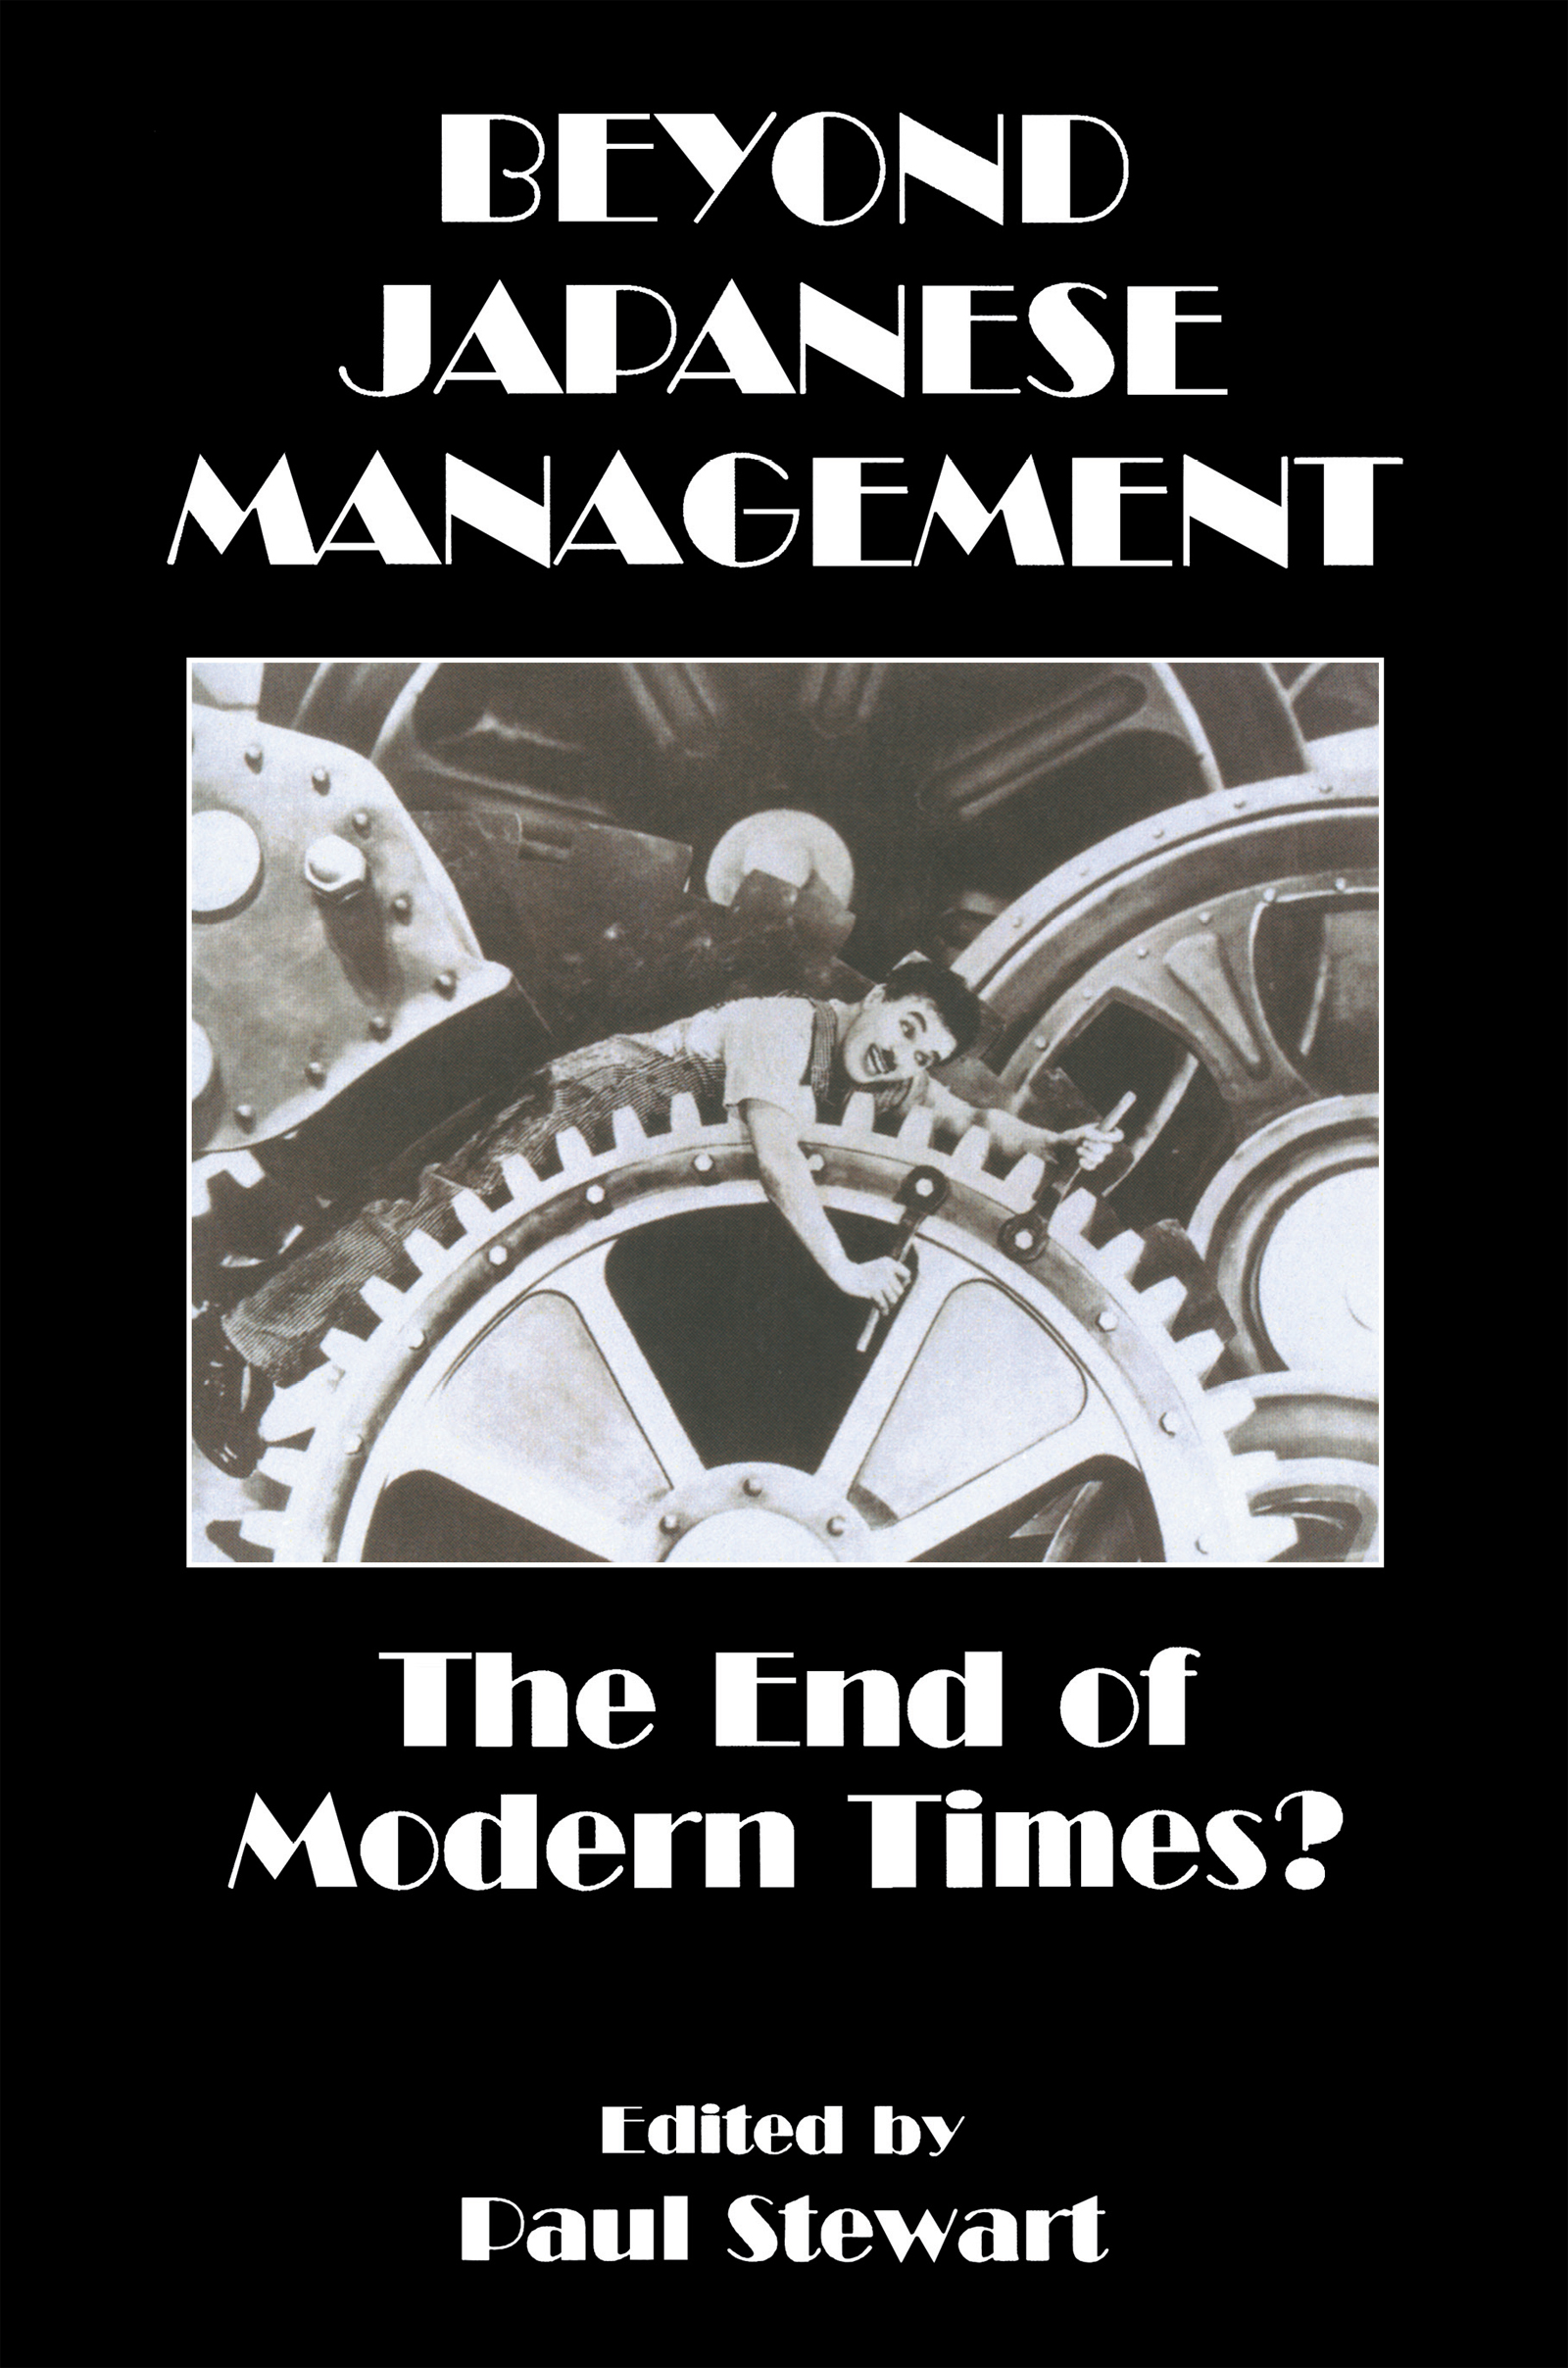 Beyond Japanese Management: The End of Modern Times? book cover